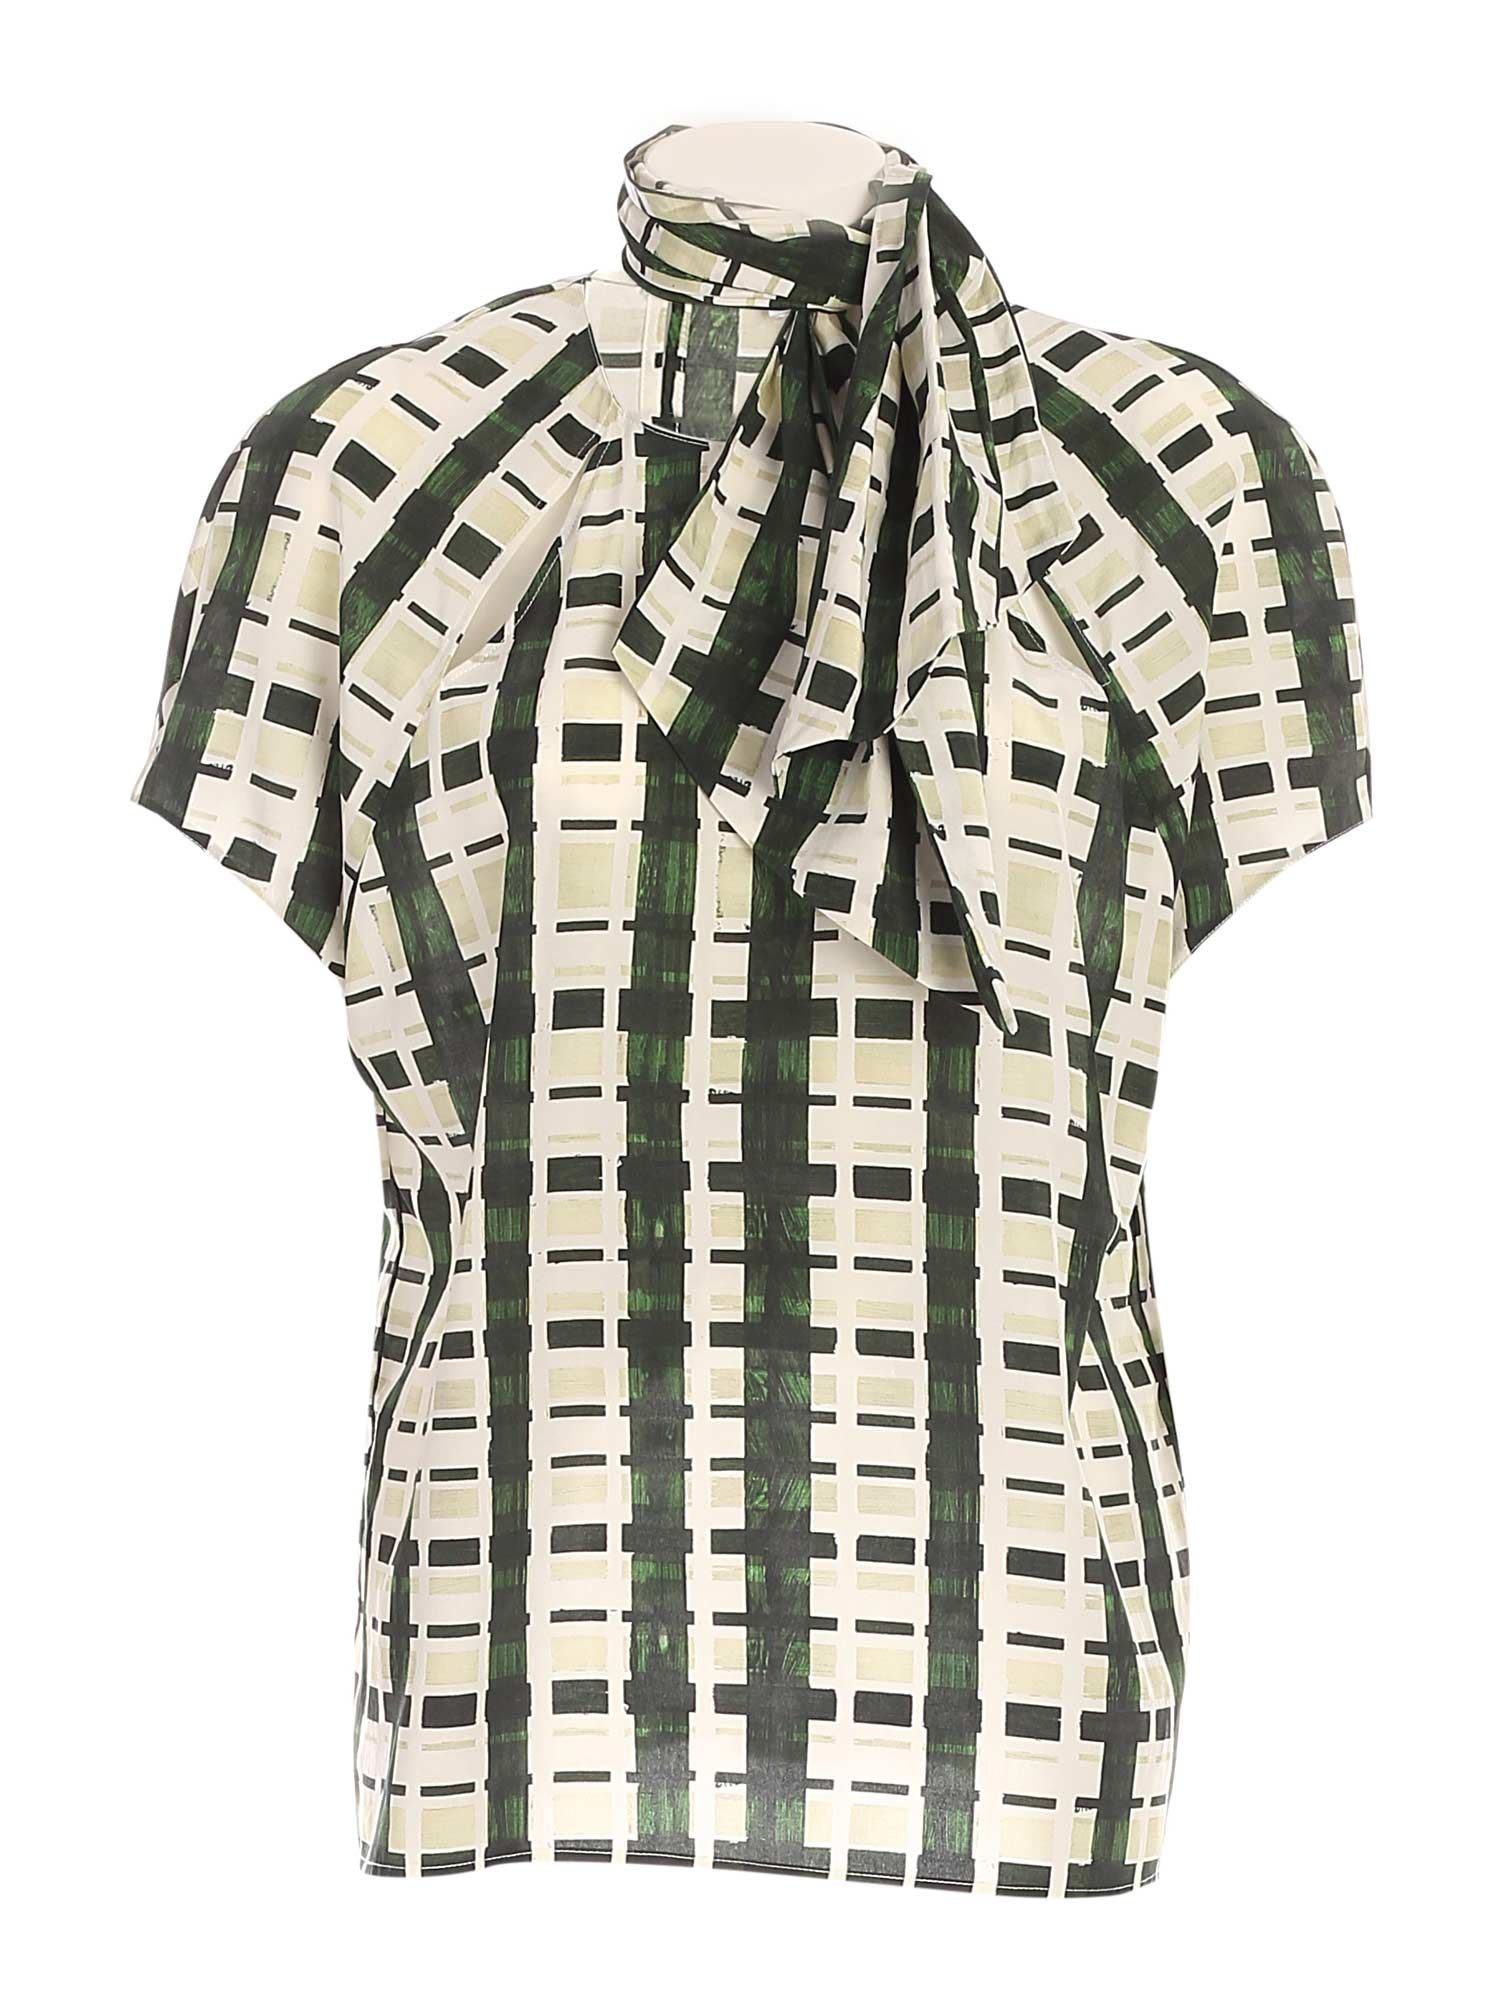 Ballantyne CHECKED PRINT SHIRT IN GREEN